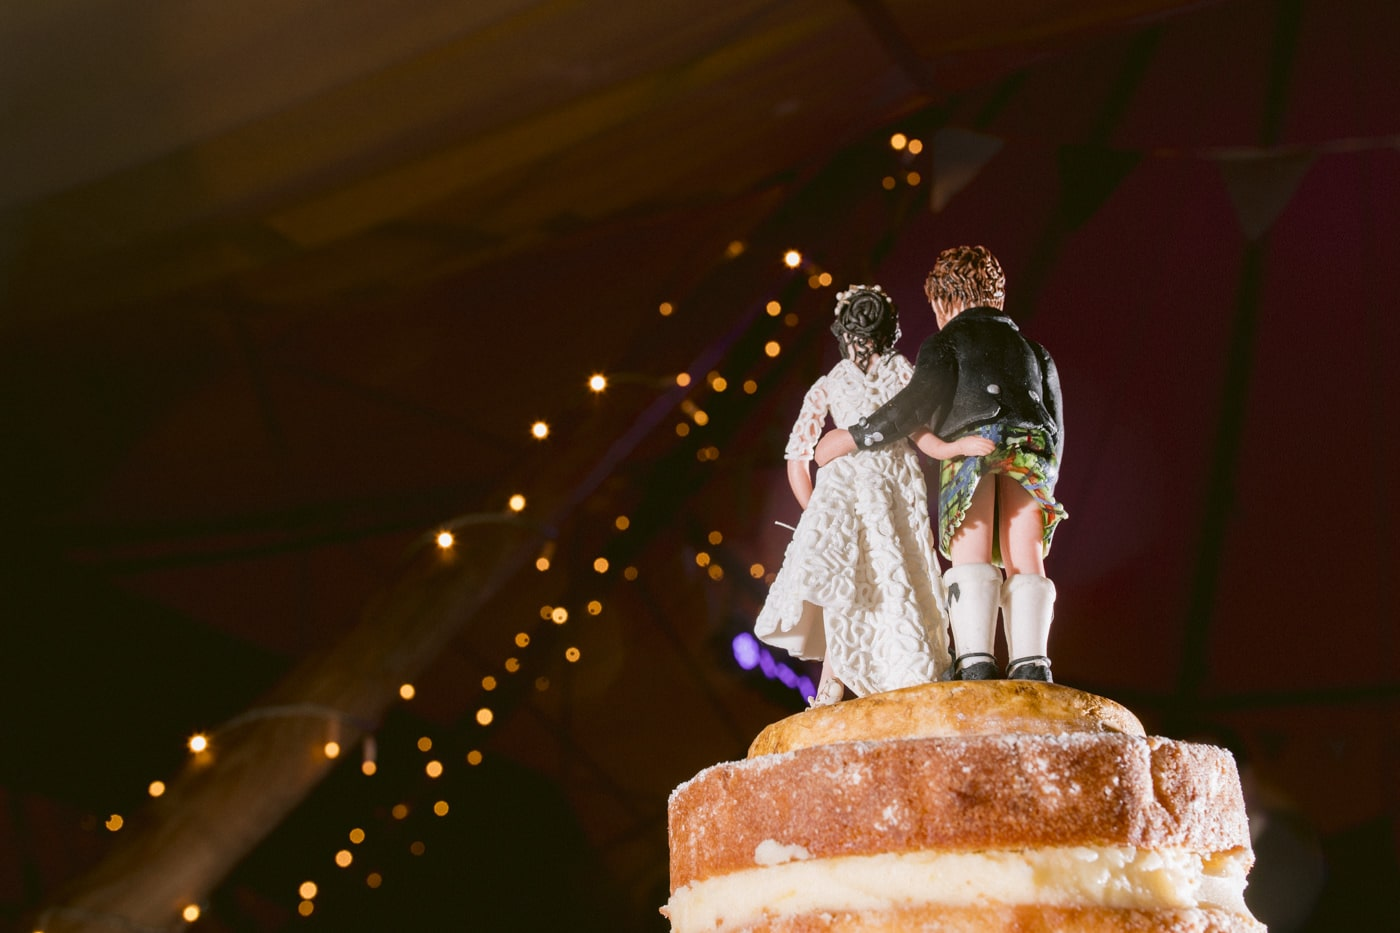 Confetti over the Wedding Cake Photograph